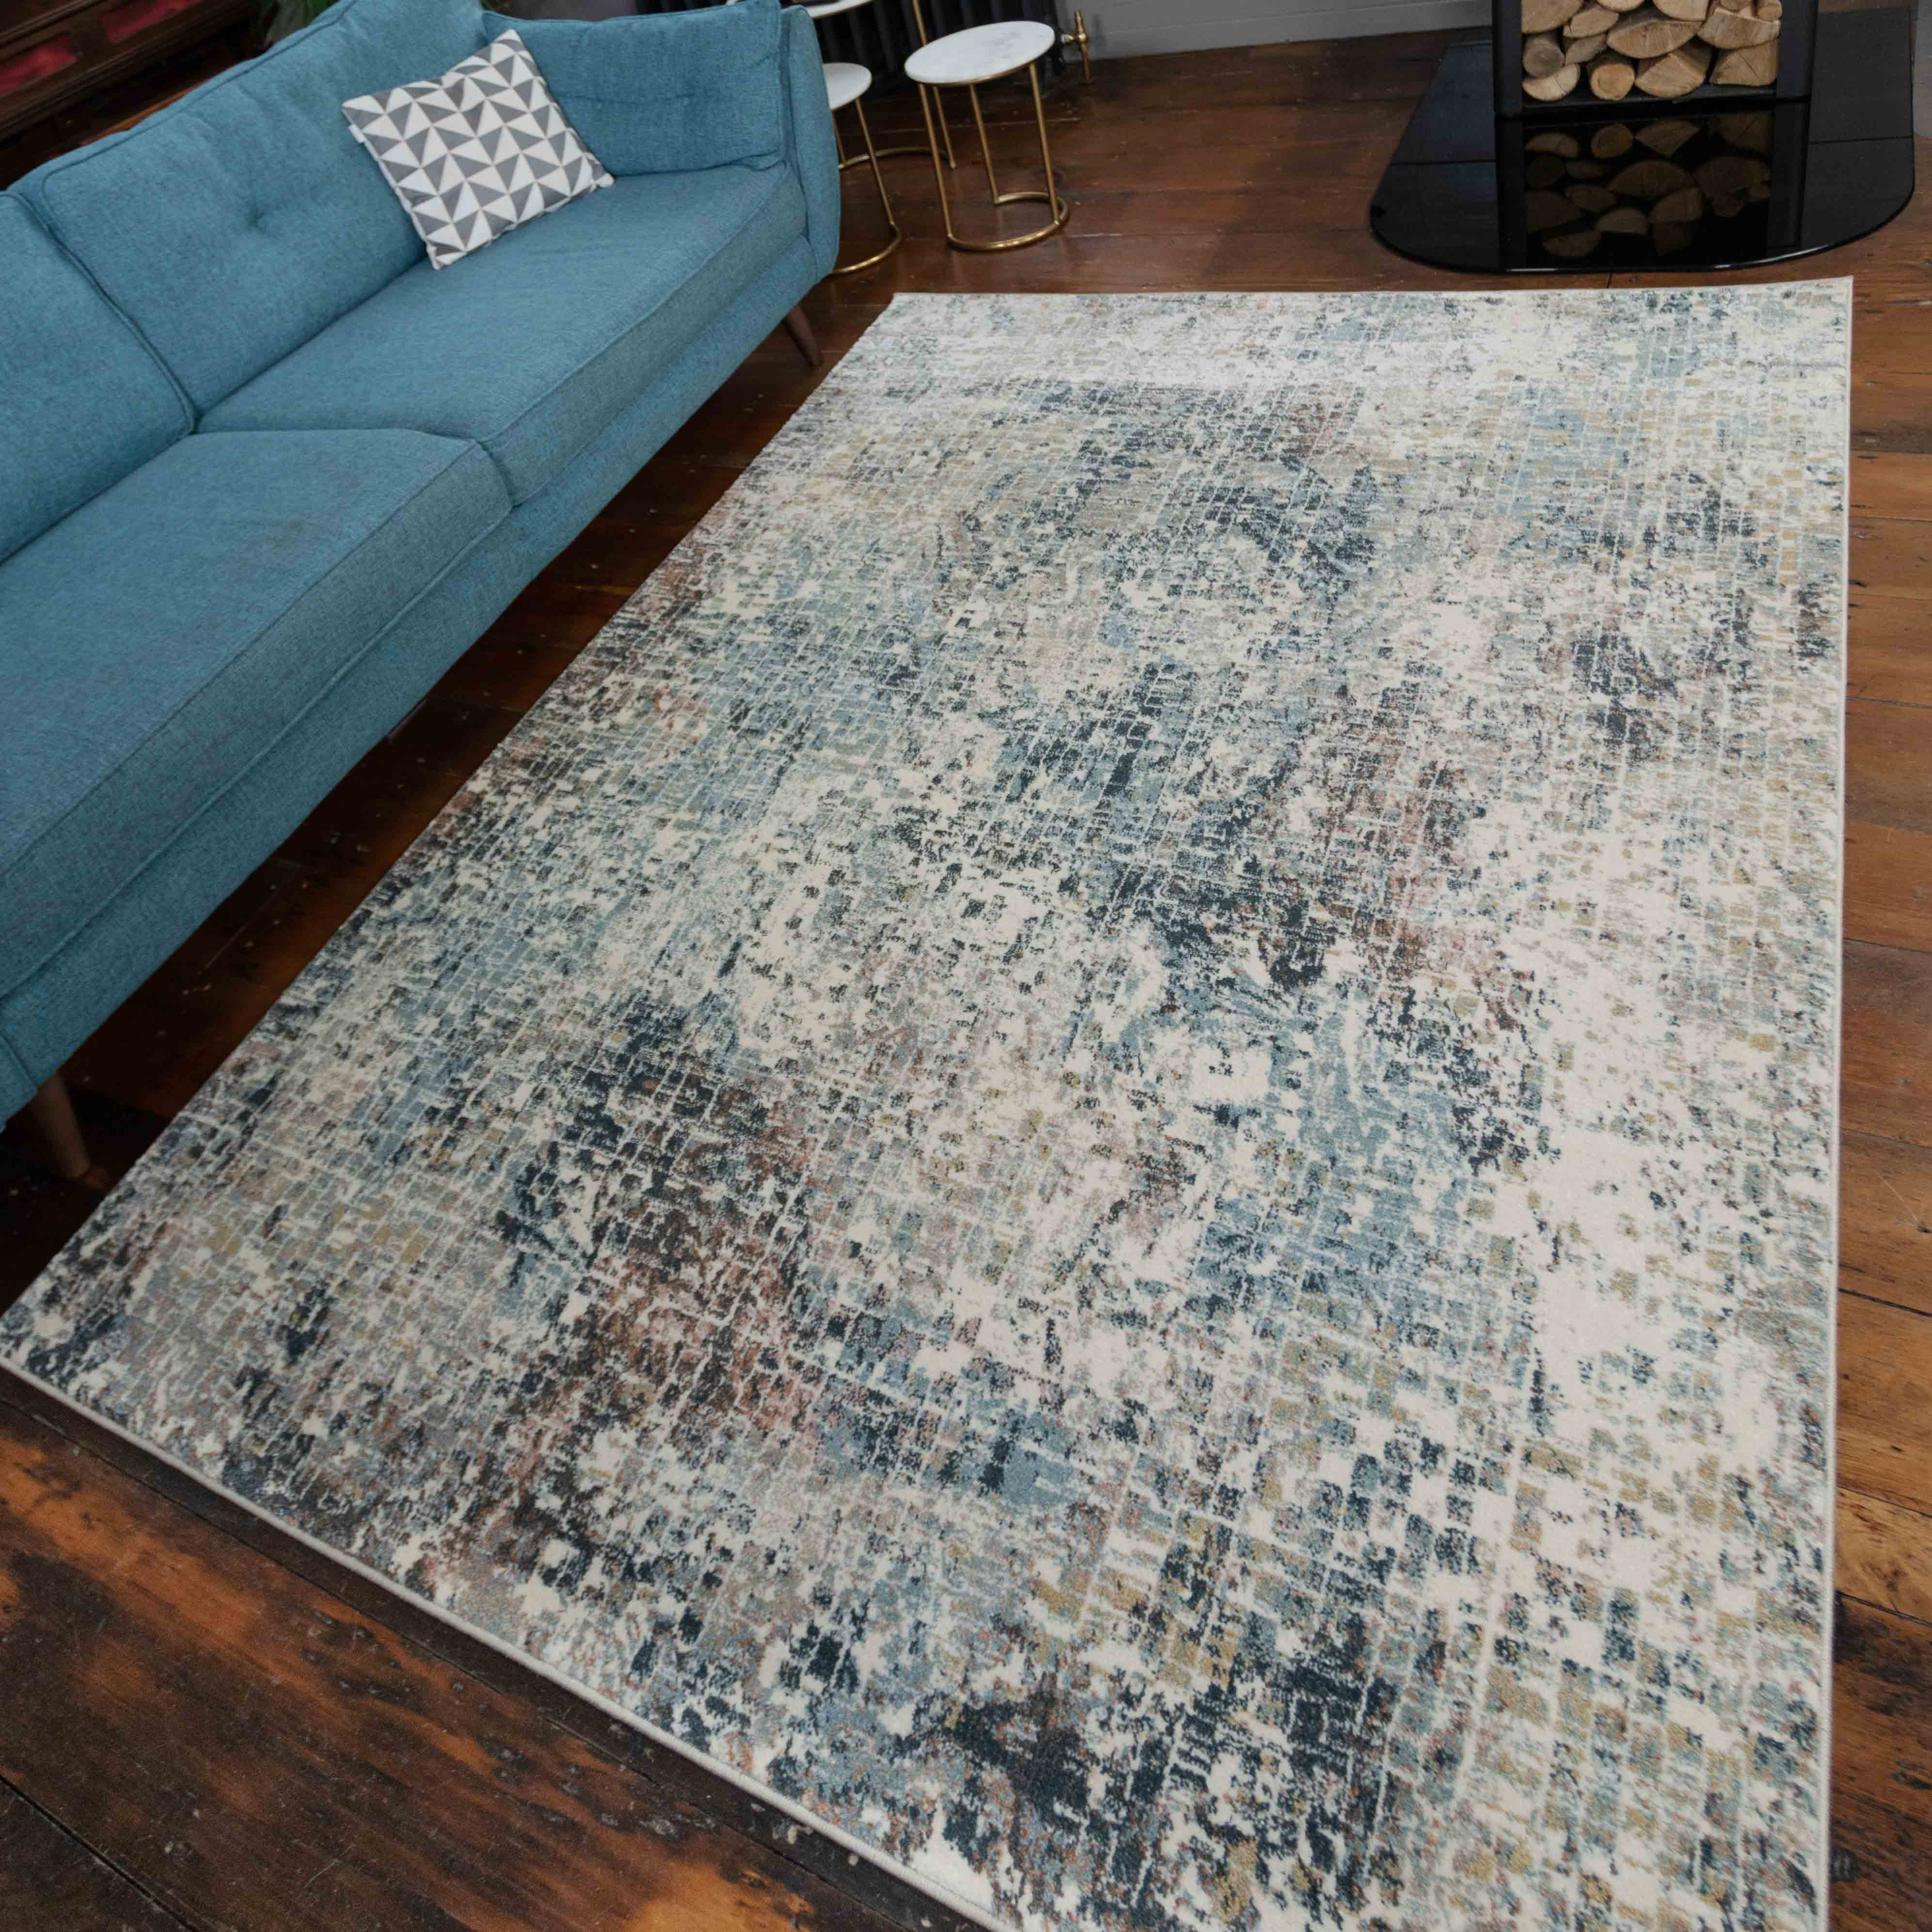 Soft Modern Blue Distressed Abstract Bedroom Rugs - Riviera